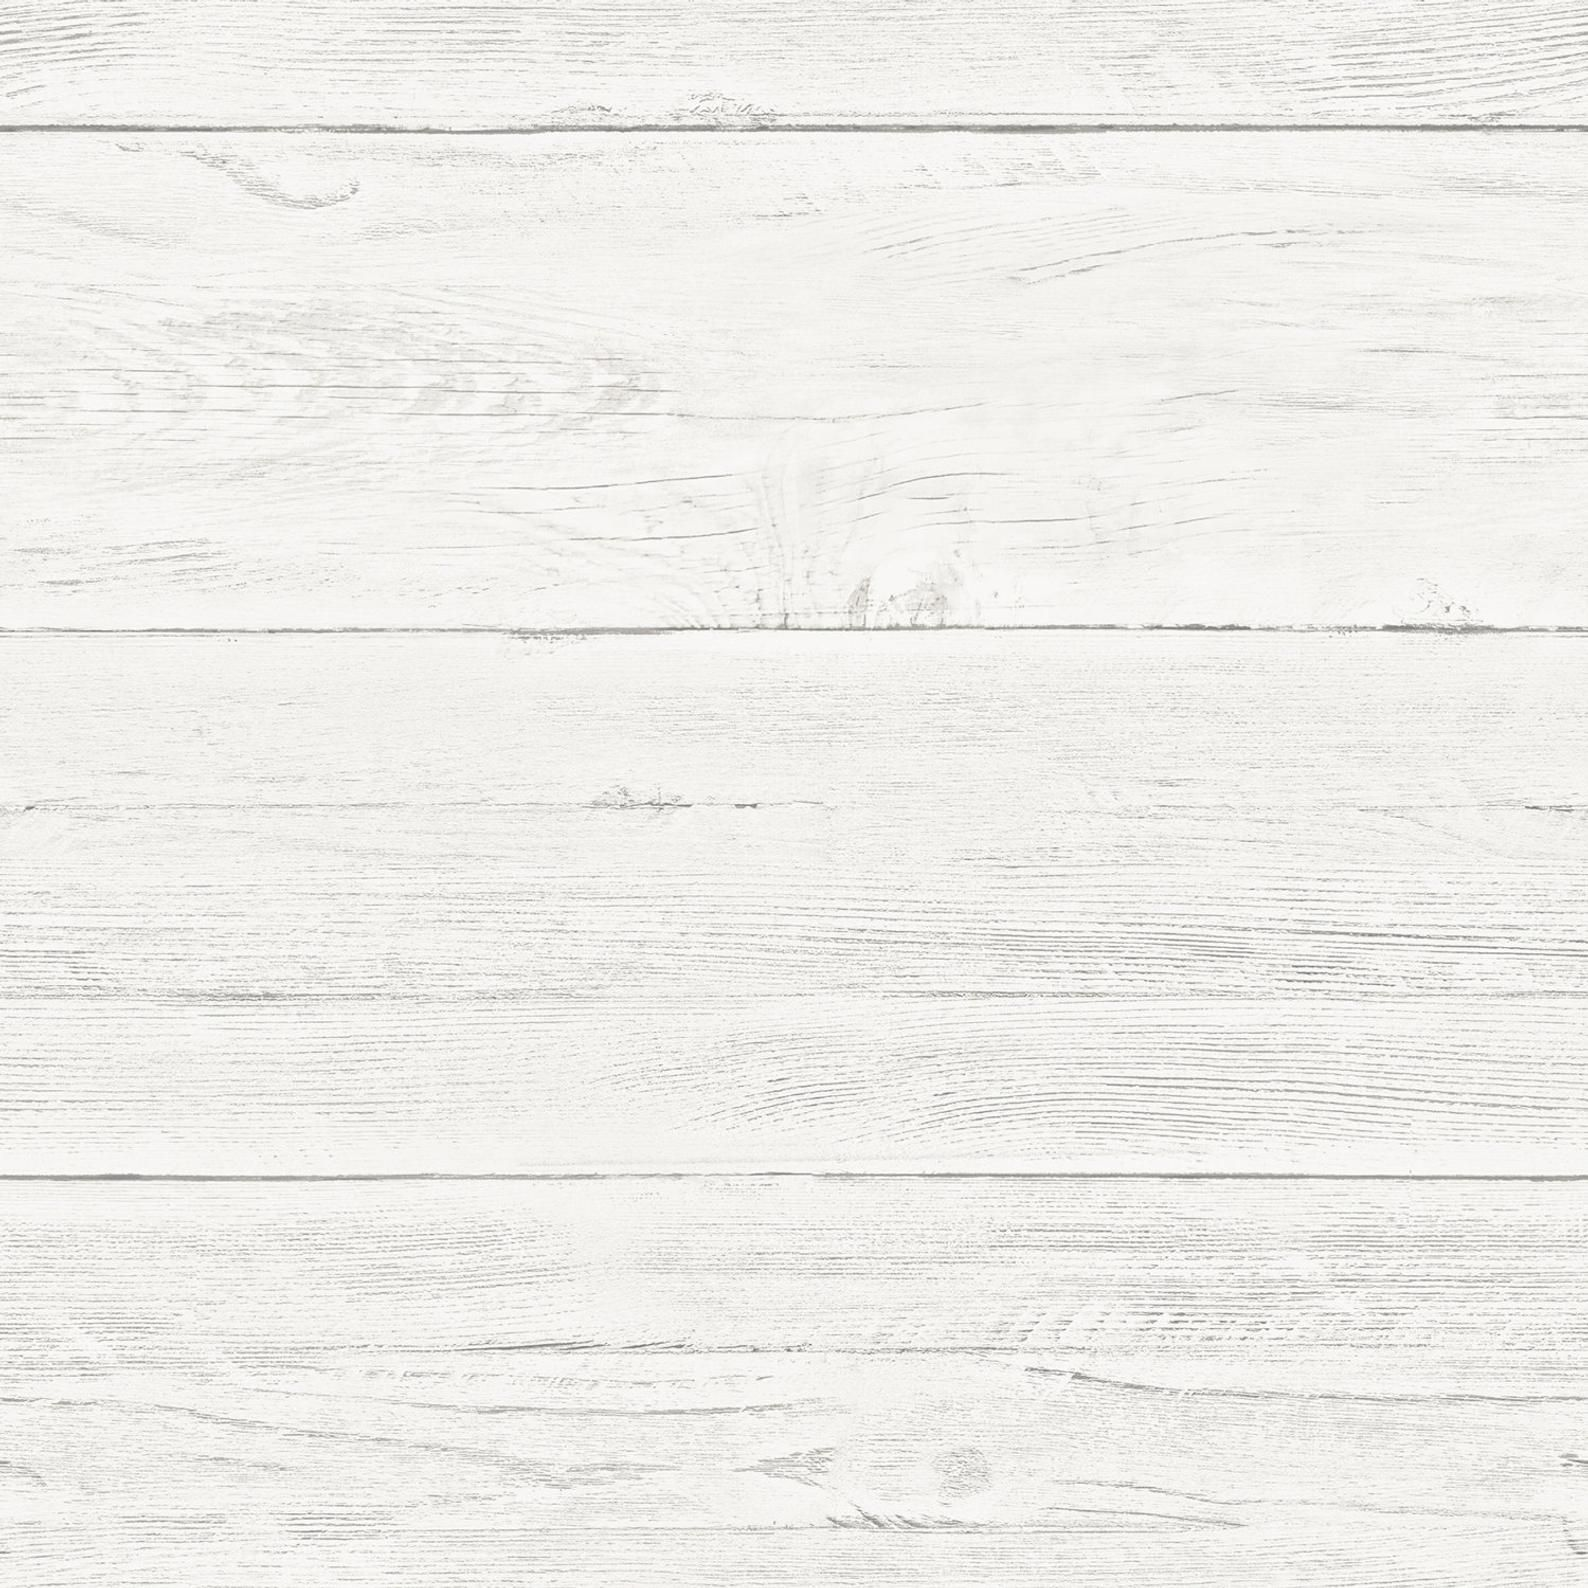 Shiplap Reclaimed Wood Peel And Stick Farmhouse Wallpaper Etsy Peel And Stick Shiplap Peel And Stick Wallpaper Wood Wallpaper